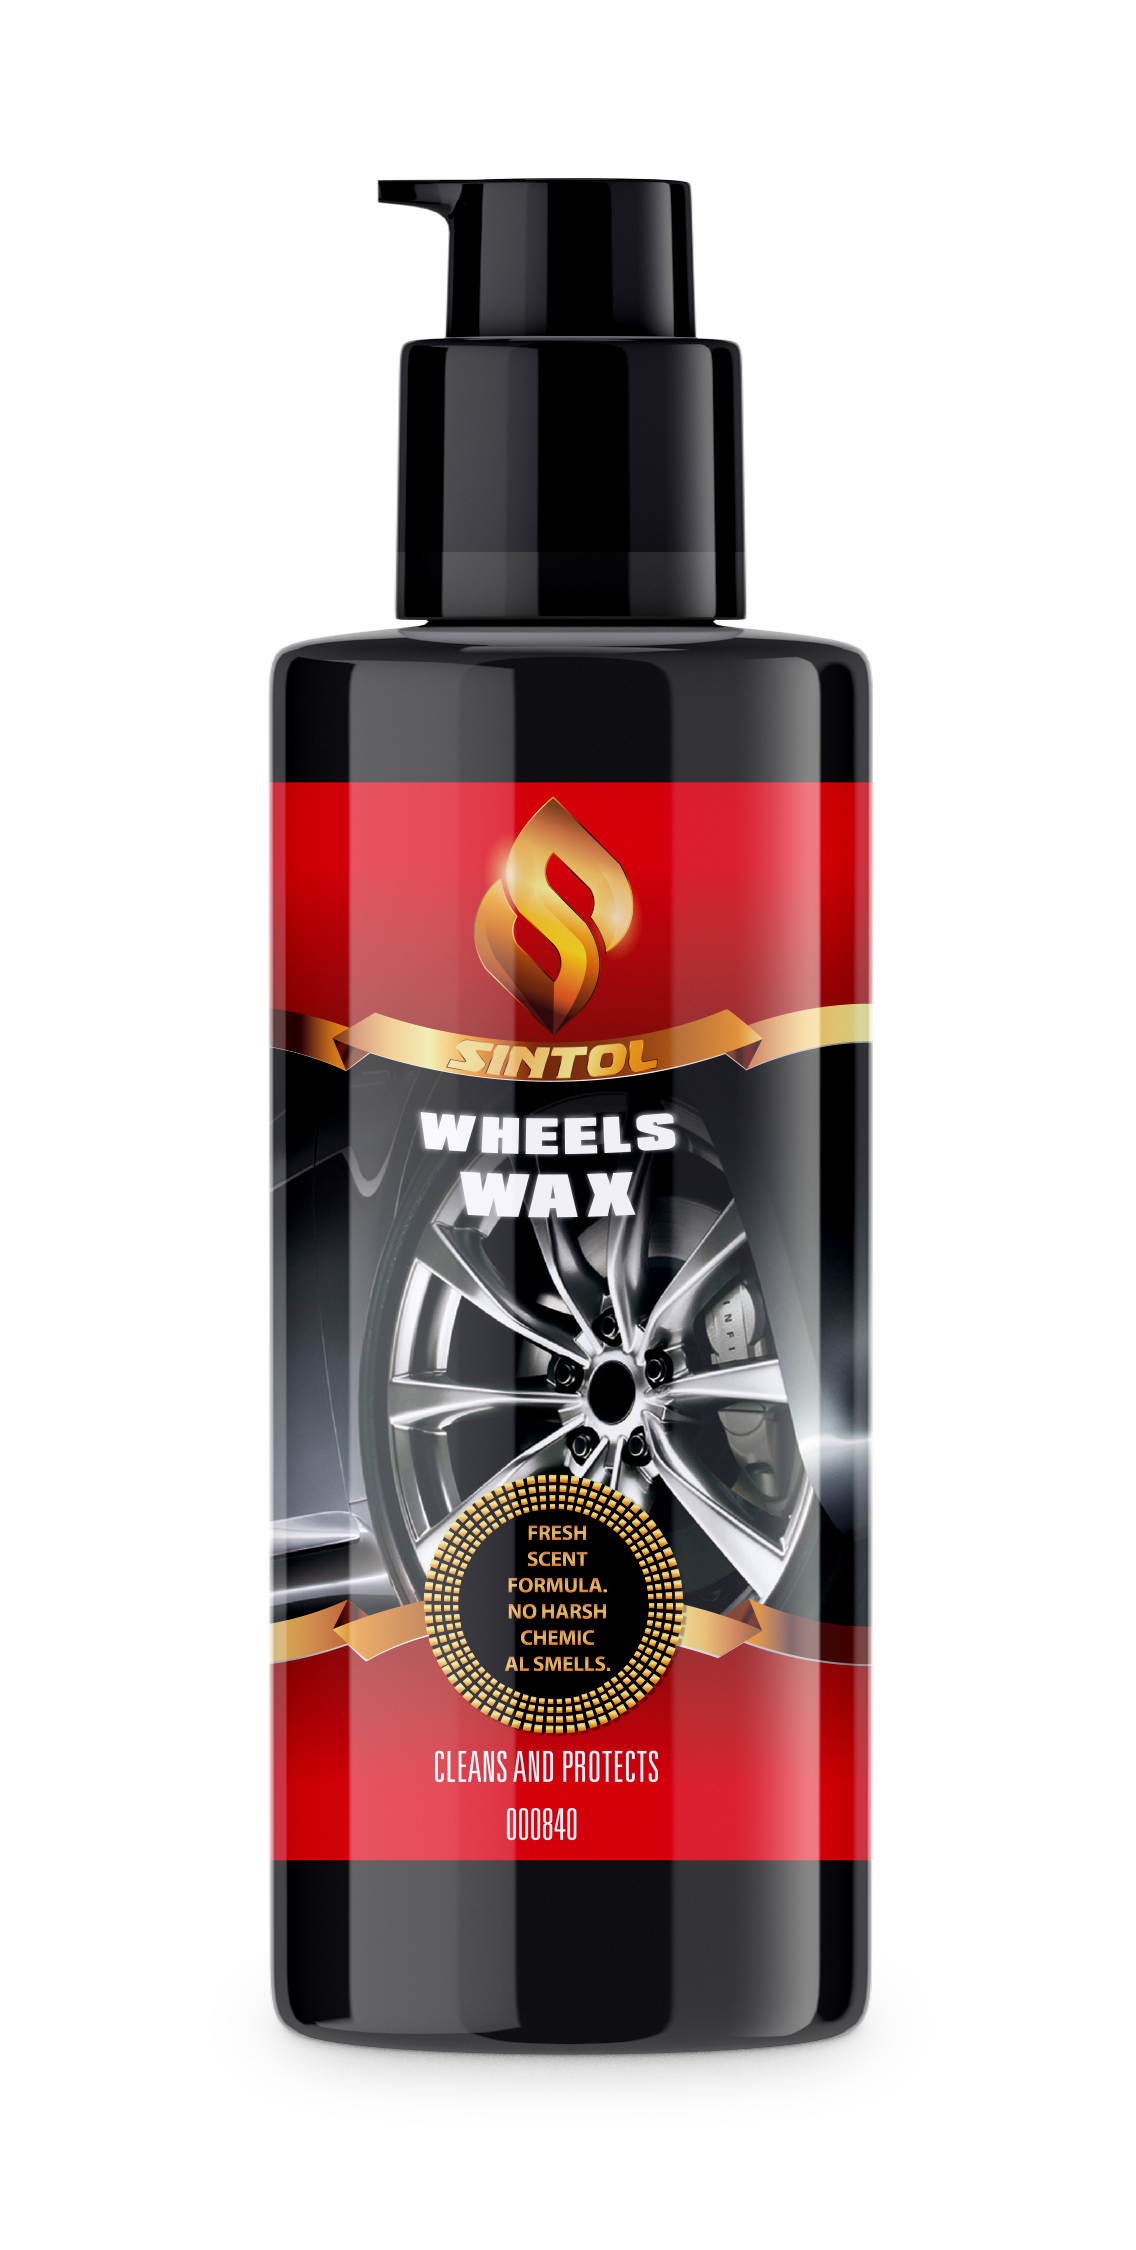 WHEELS WAX